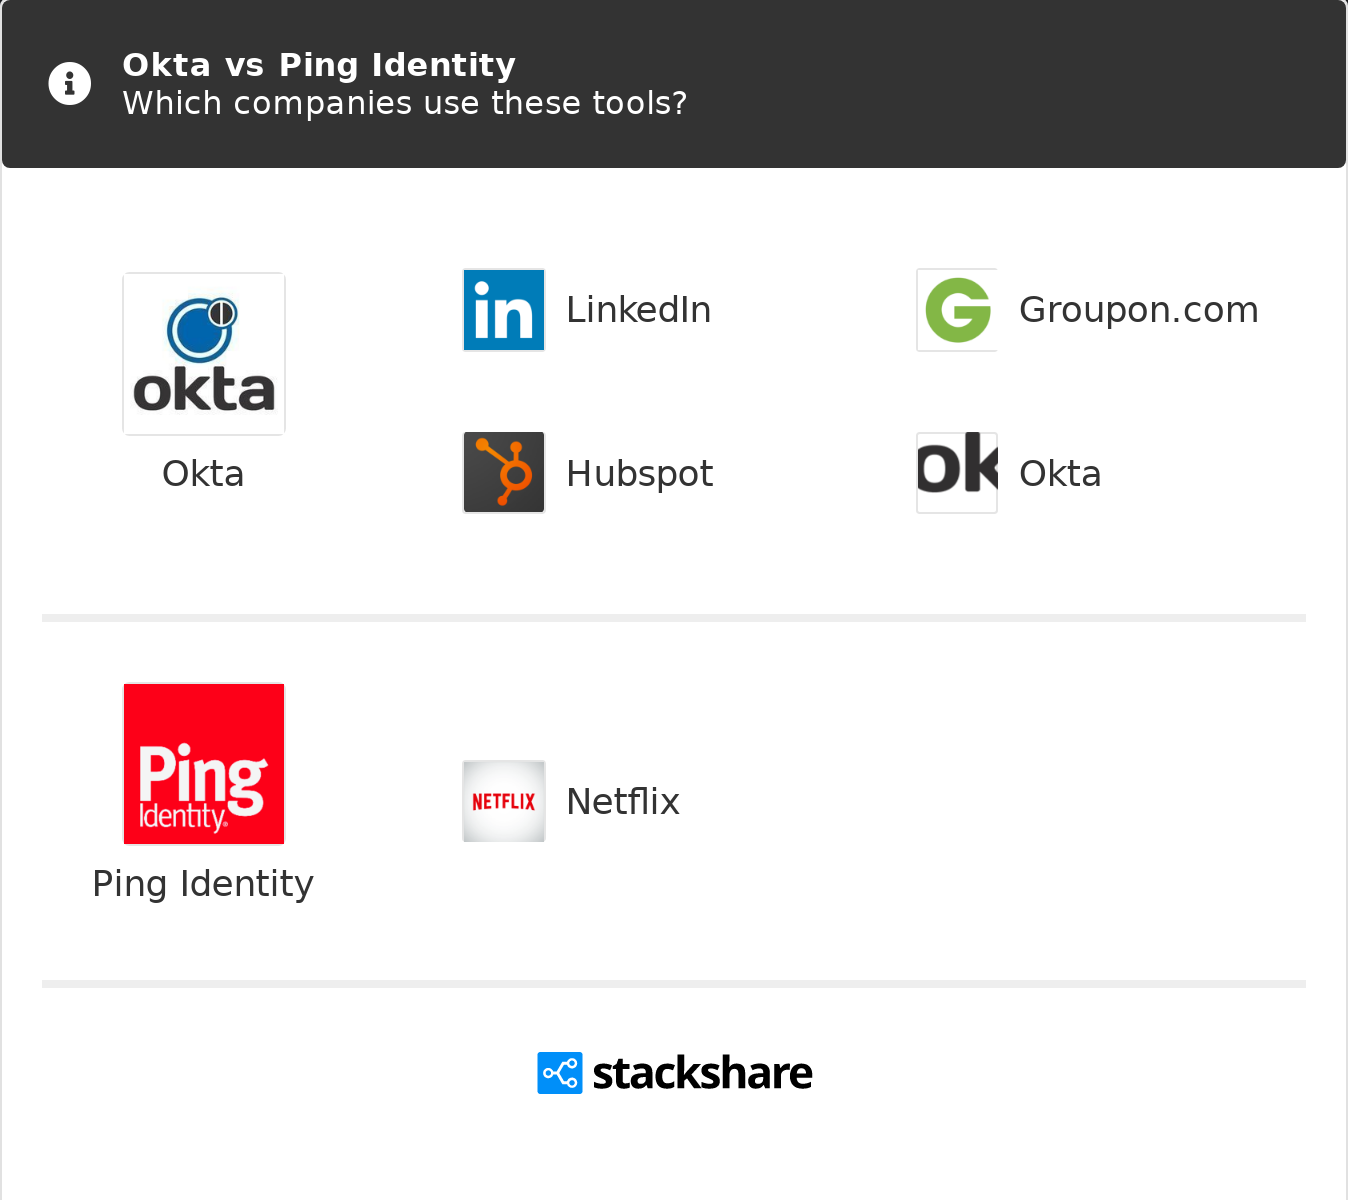 Okta vs Ping Identity | What are the differences?